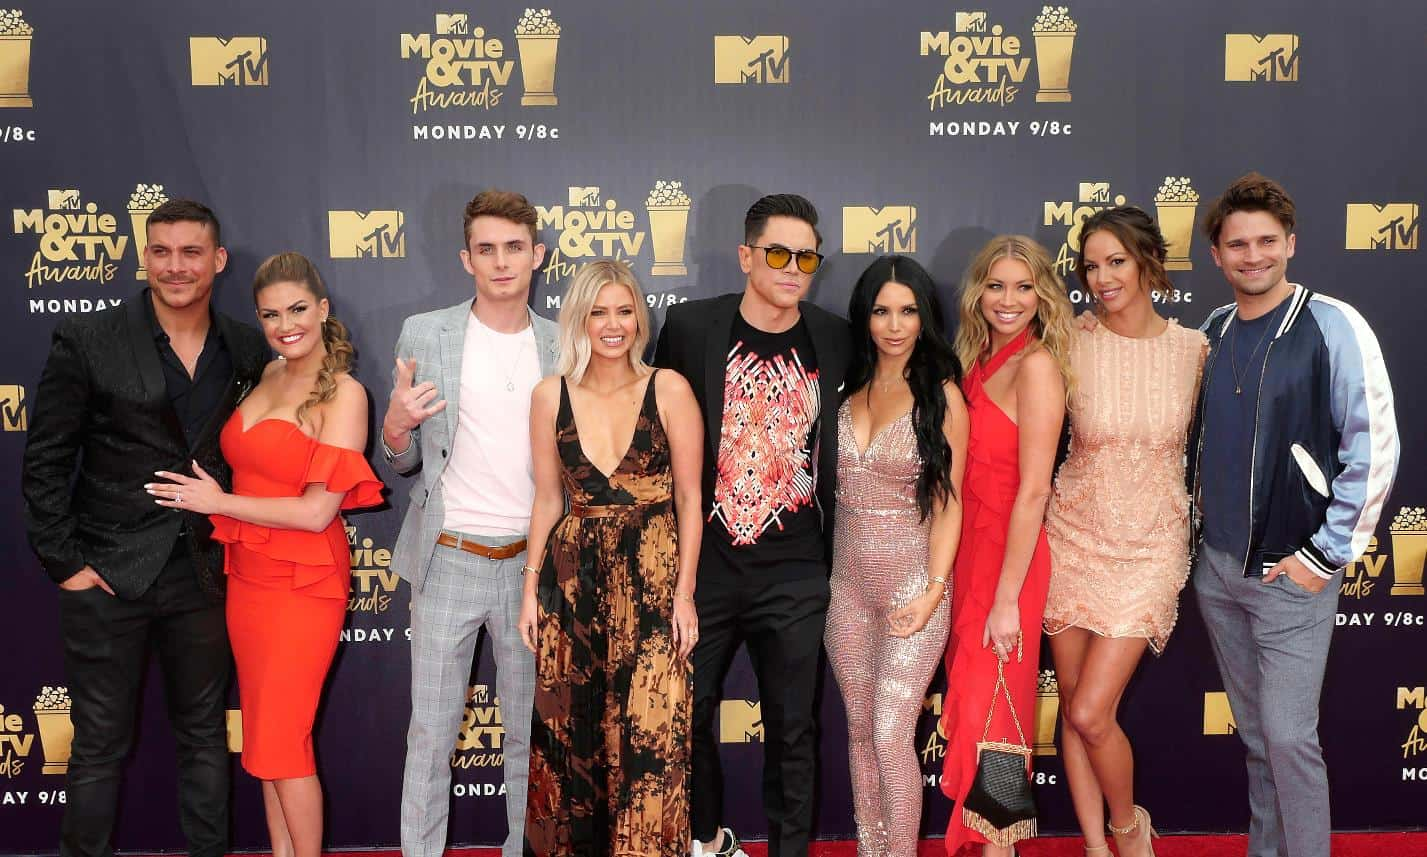 Vanderpump Rules Cast is Divided After Reunion, Kristen Cries as Scheana Says She 'Survived'